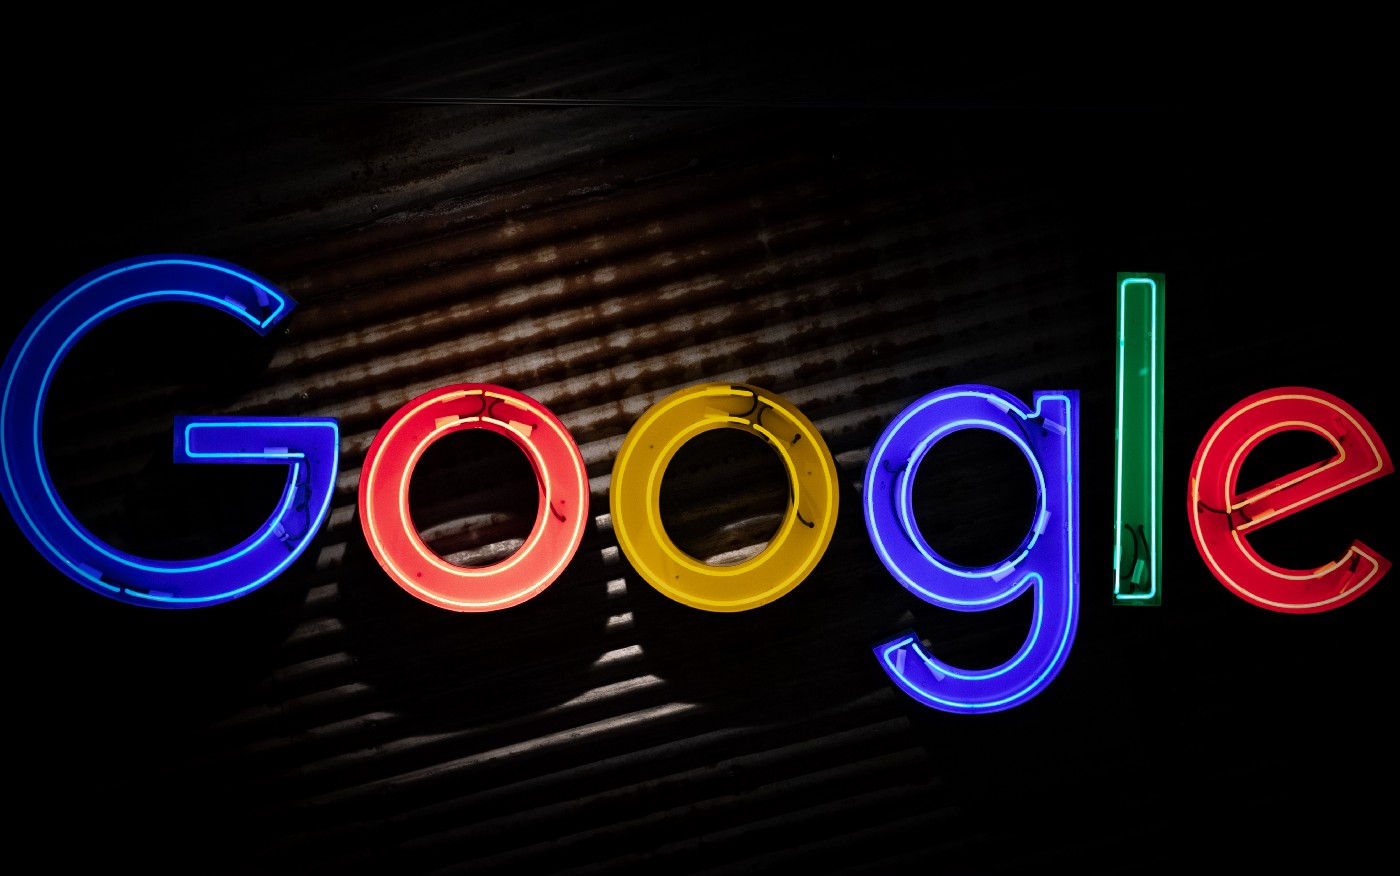 Colored lights in the shape of letters spelling out Google.